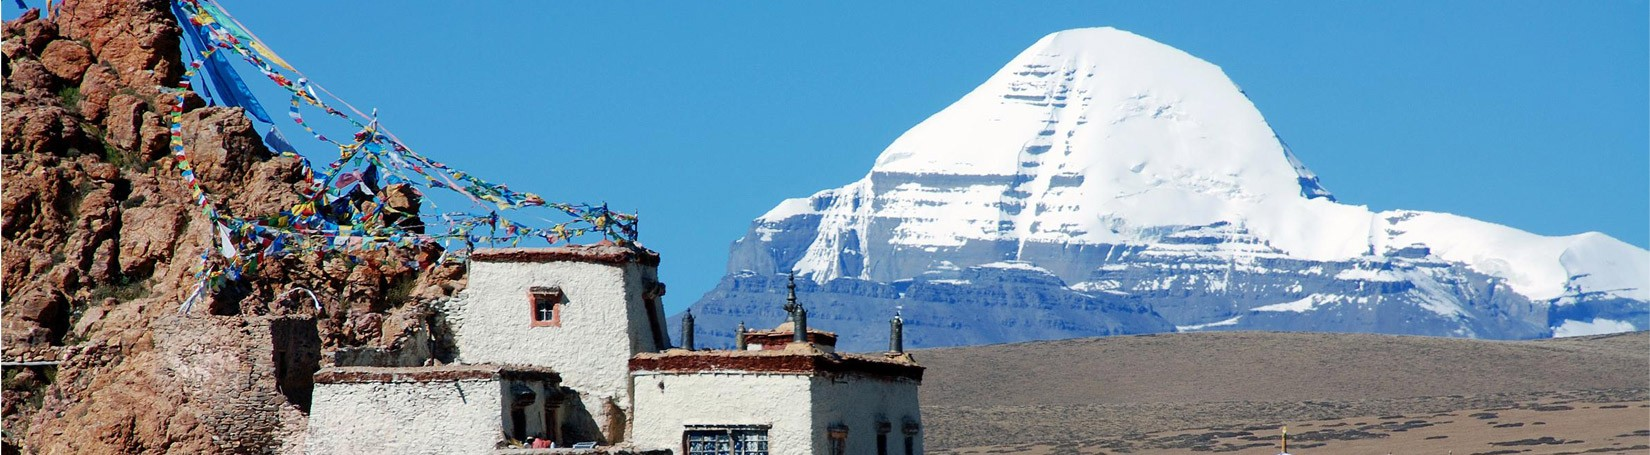 Mount Kailash view from Chui Gumpa